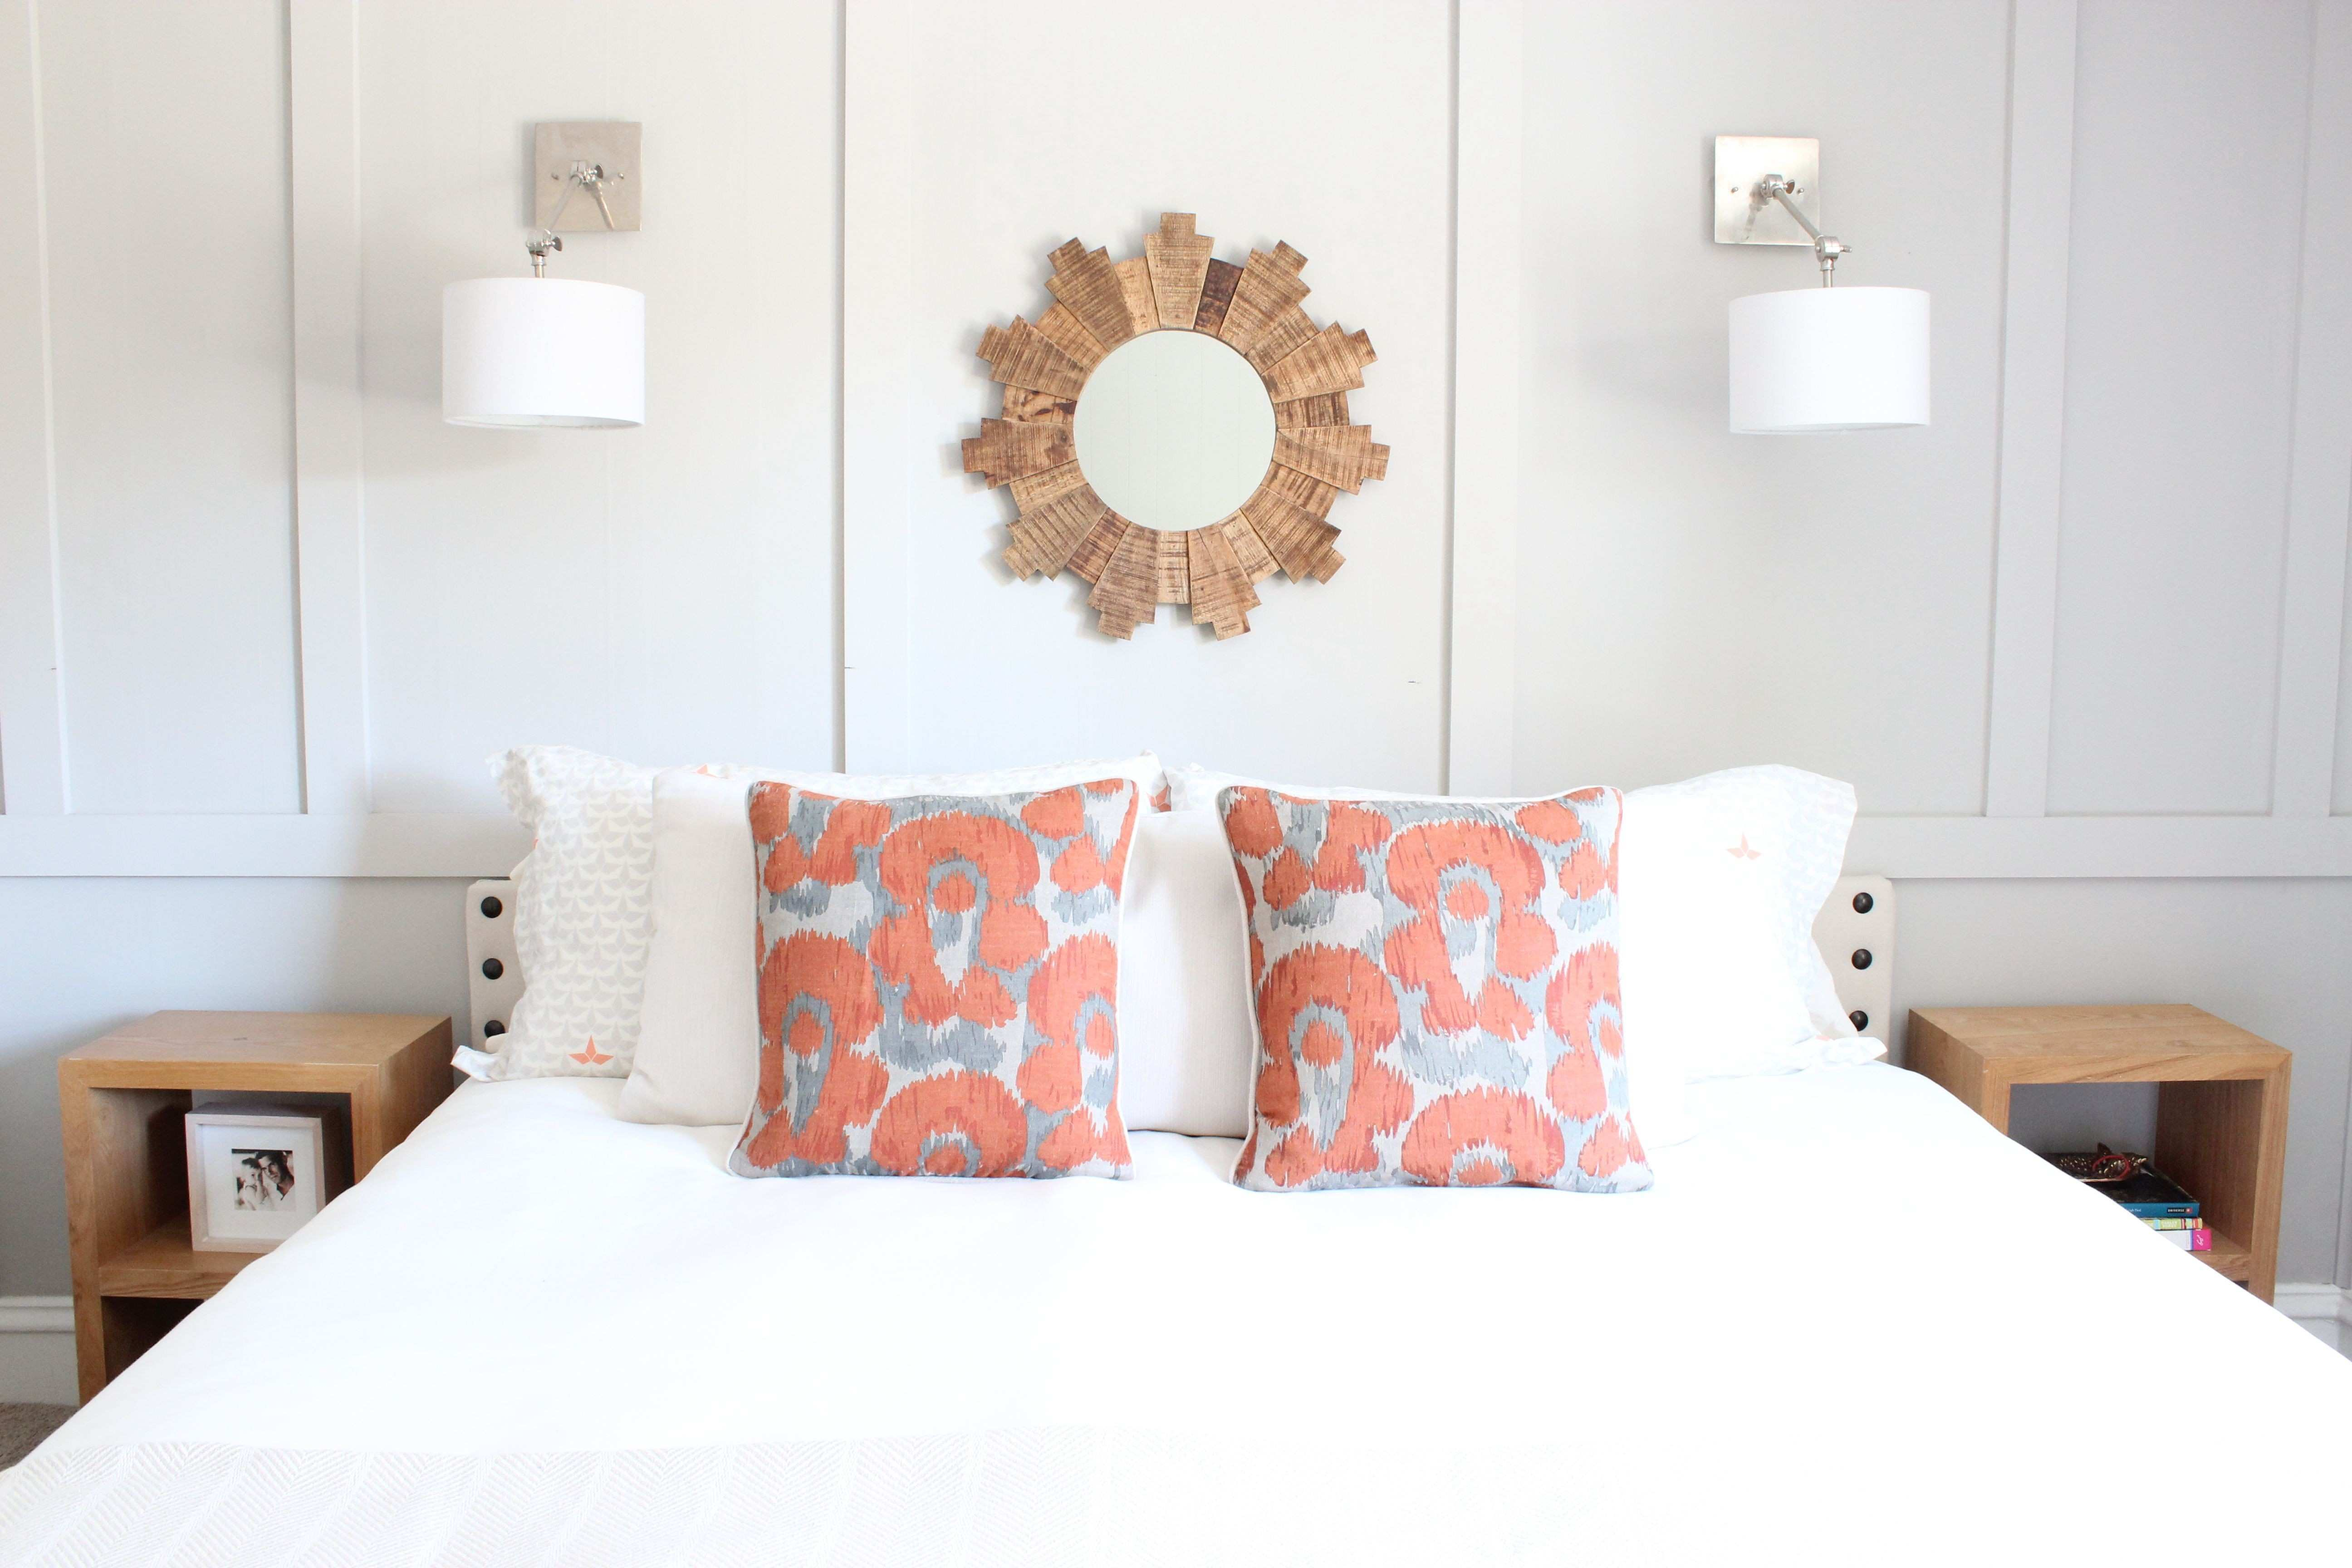 Board and Batten accent wall sunburst mirror swing arm sconces